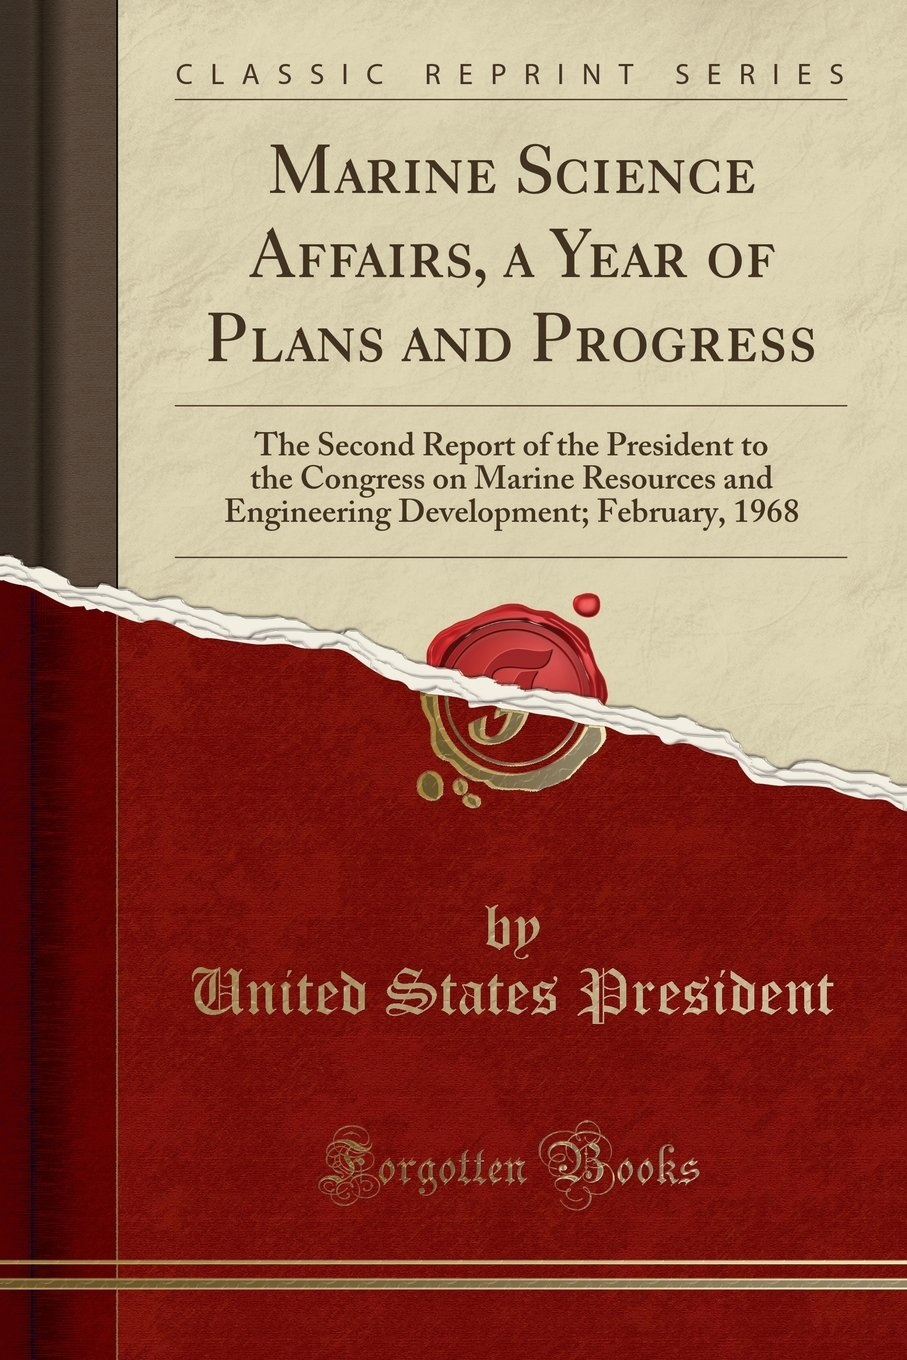 Download Marine Science Affairs, a Year of Plans and Progress: The Second Report of the President to the Congress on Marine Resources and Engineering Development; February, 1968 (Classic Reprint) PDF